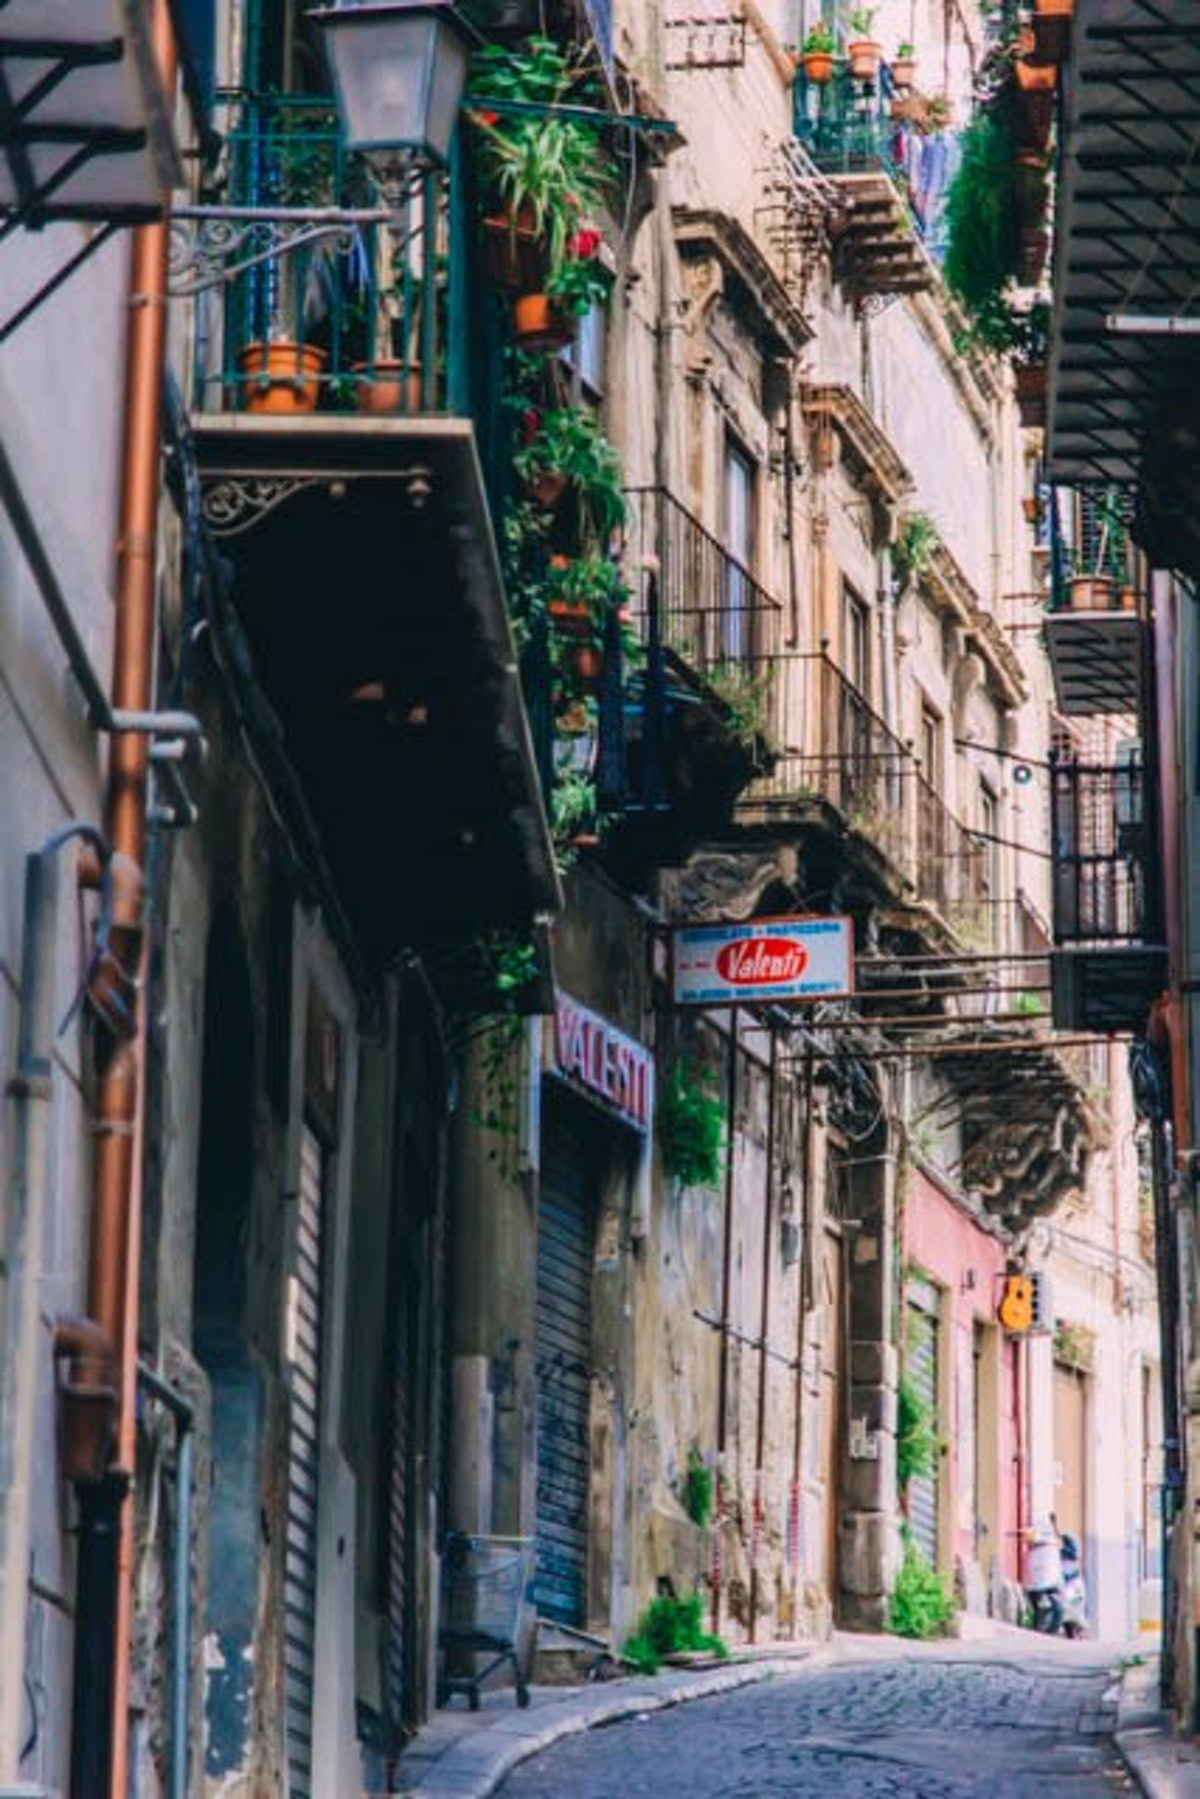 PALERMO-STREETS OF THE OLD TOWN.jpg